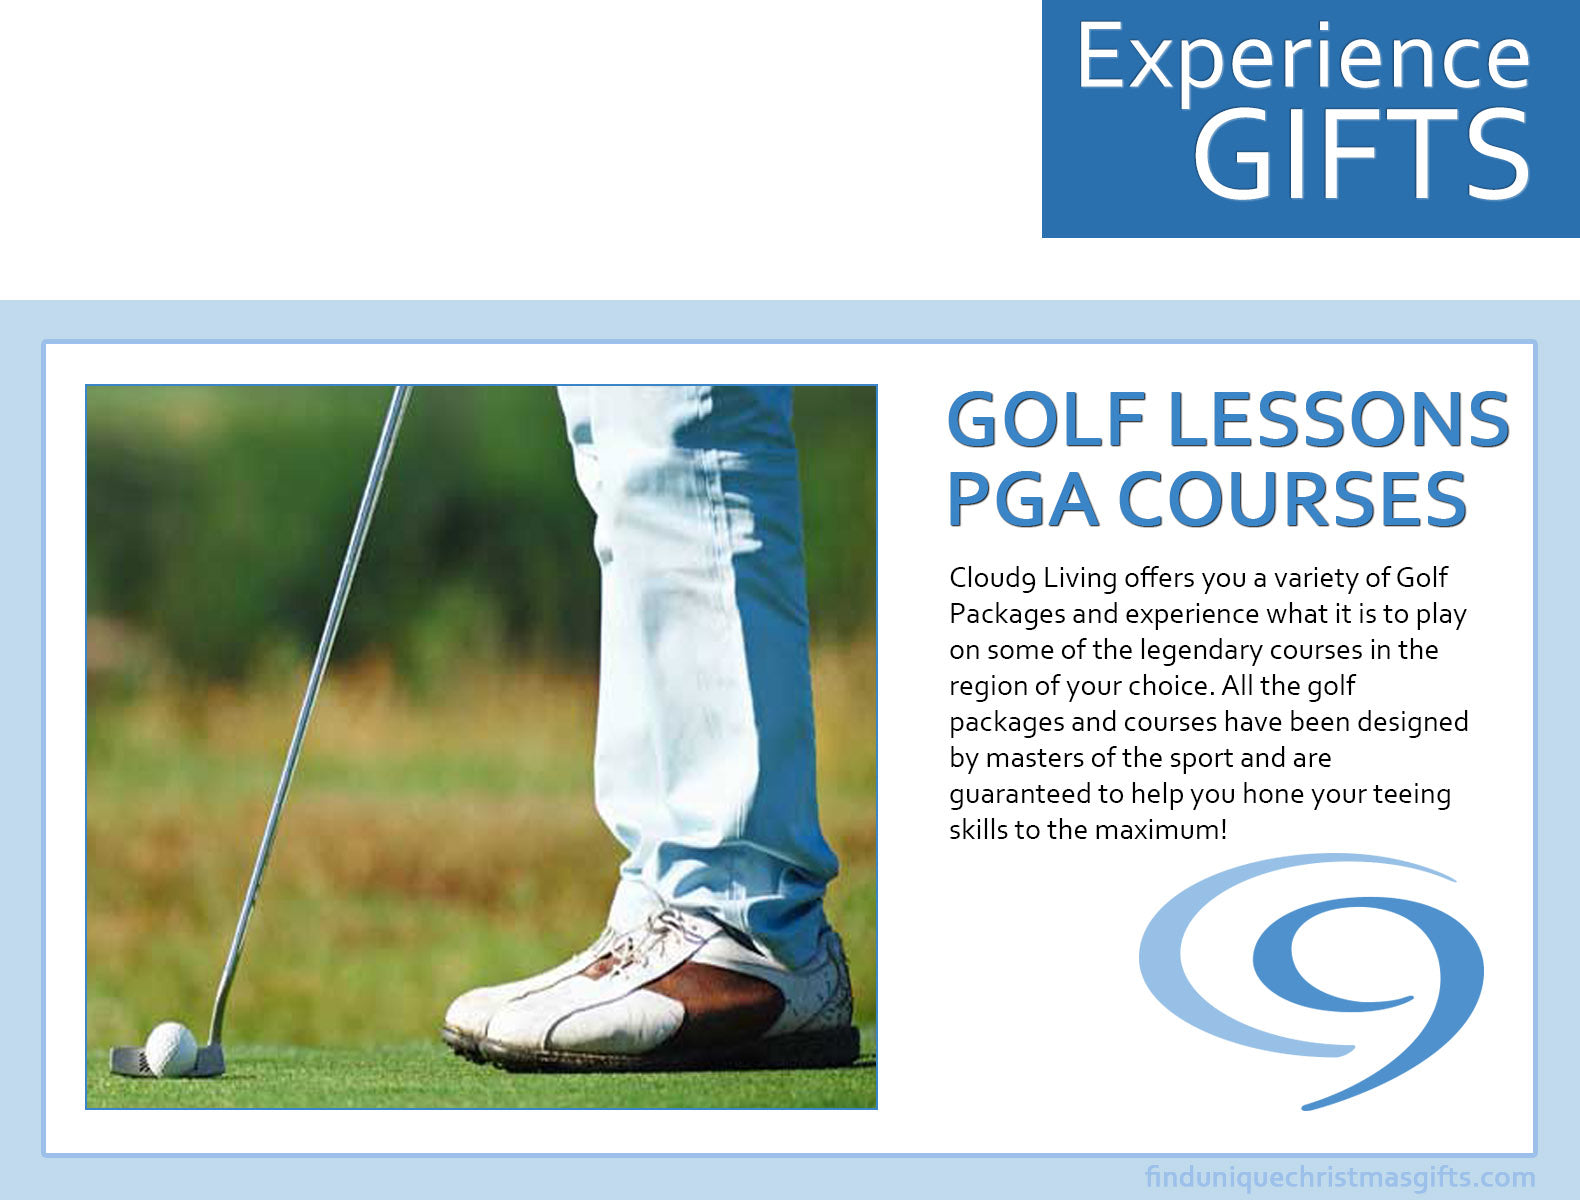 Golf Lessons & PGA Courses - Experience Gifts Cloud 9 Living - Find ...